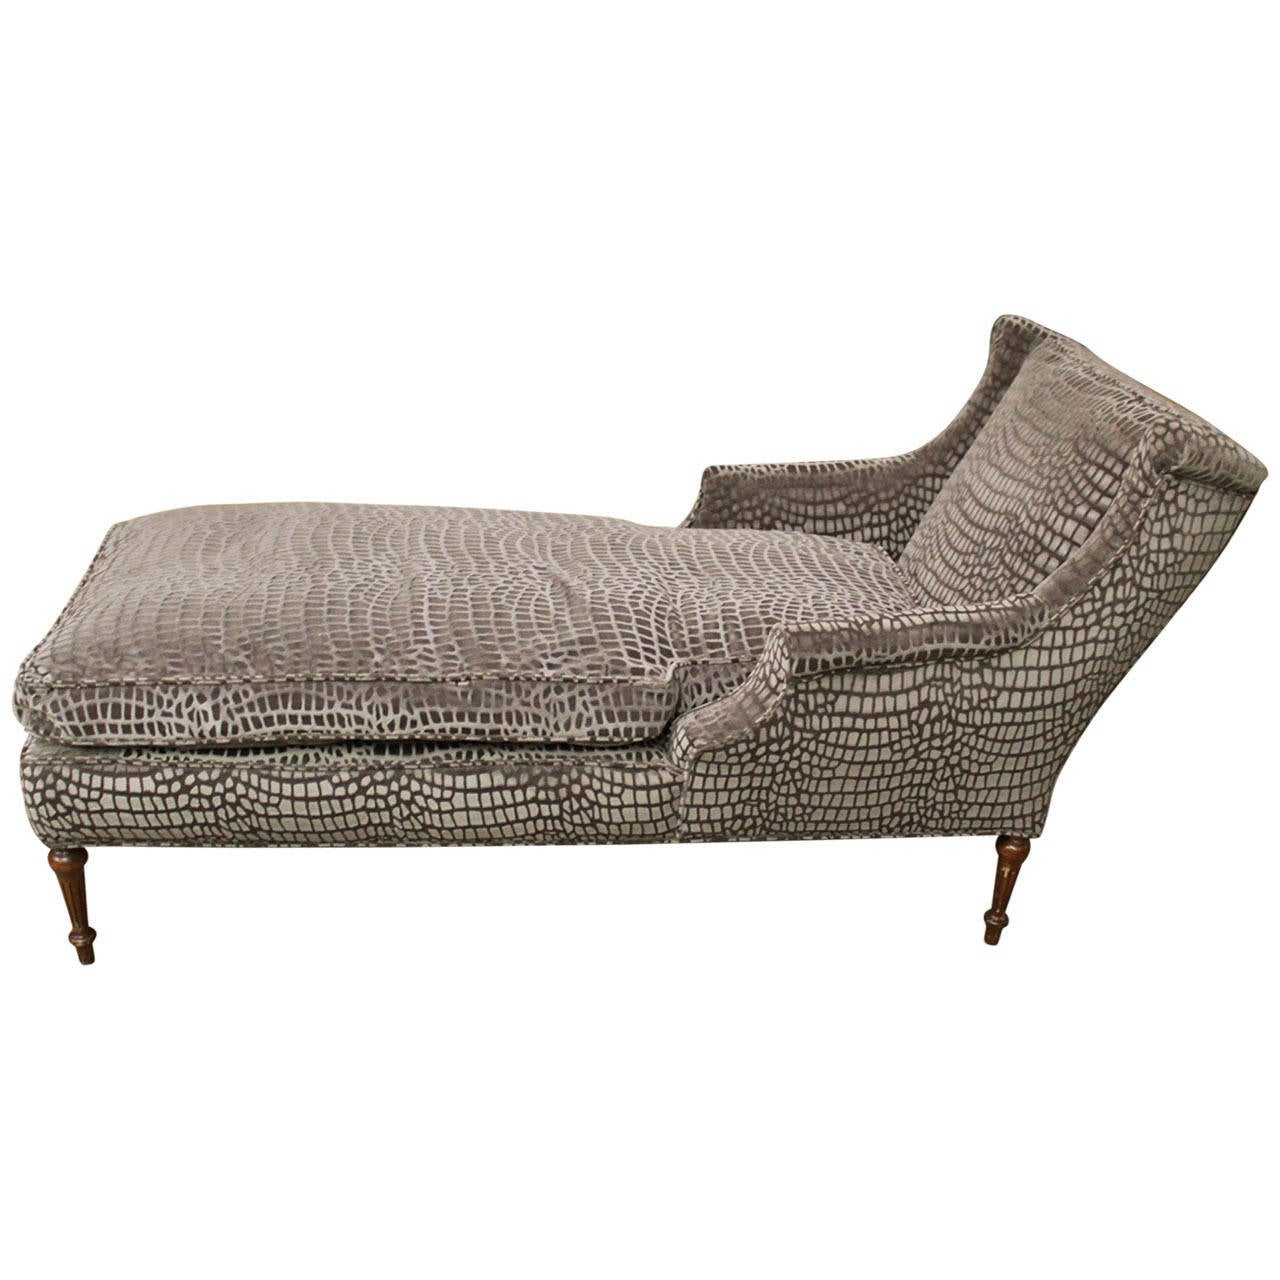 French Chaise Longue at 1stdibs